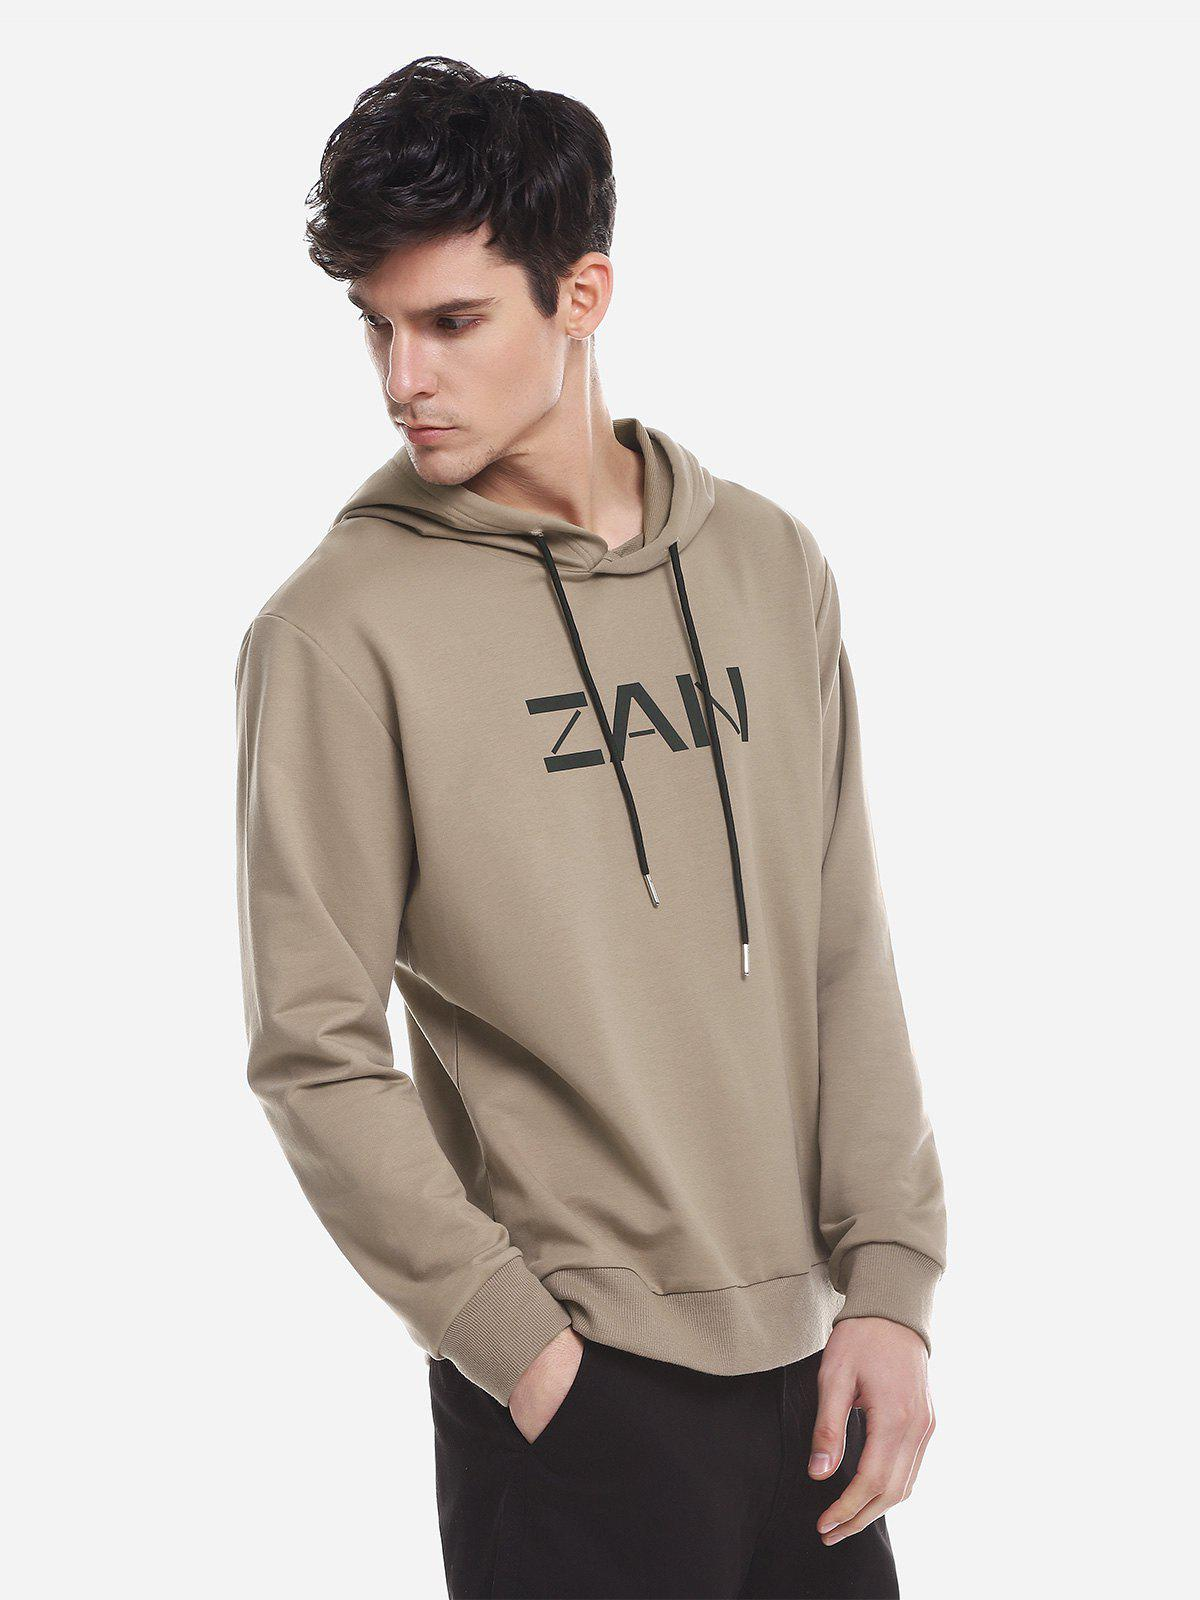 Hot Sport Casual Pullover Hoodie